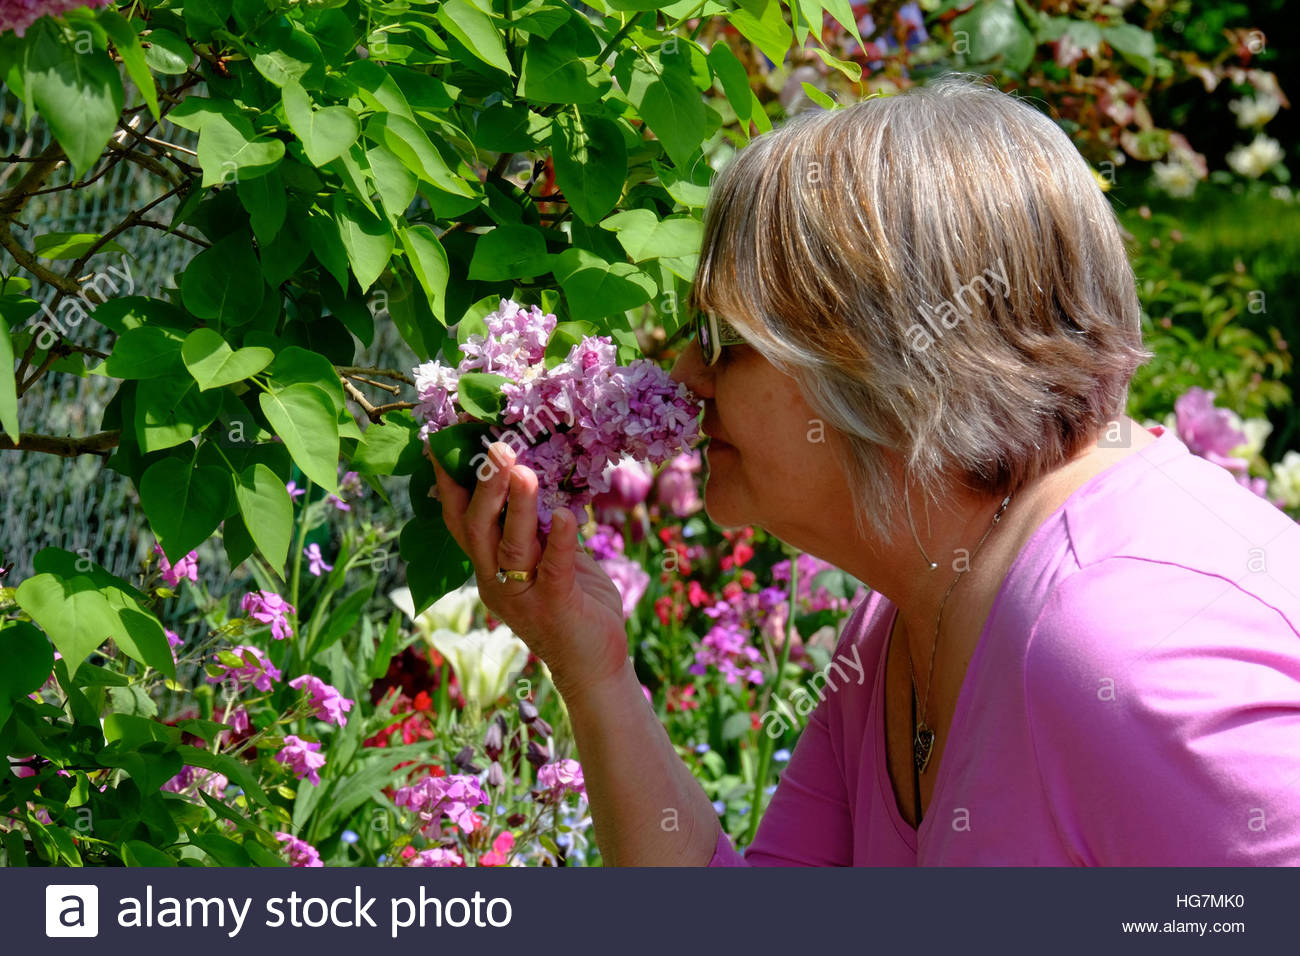 A woman pauses for a moment to smell lilacs in Monet's Garden in Giverny, France. - Stock Image